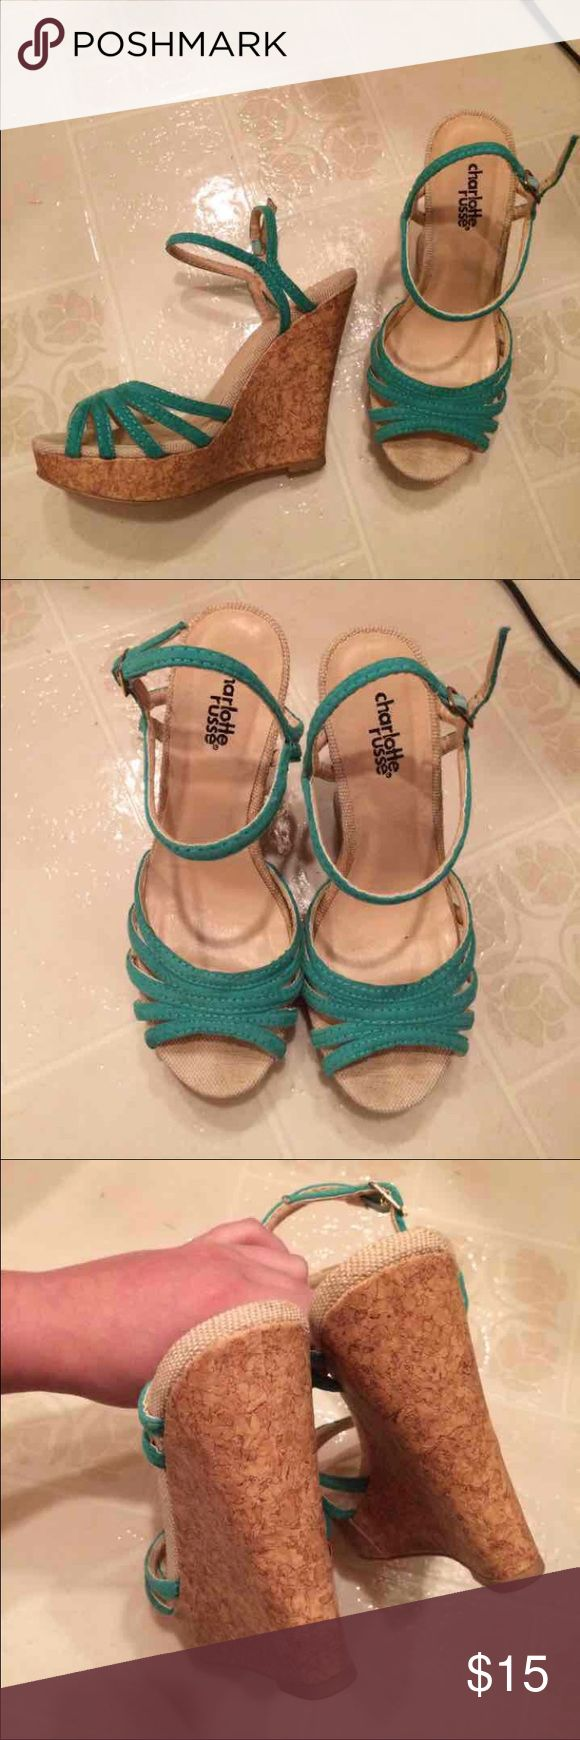 teal/turquoise wedge heels 1 inch platform and 4 inch cork wedge heel. great condition, very comfortable. from Charlotte Russe. worn 3 times for about 5 hours each. Charlotte Russe Shoes Wedges